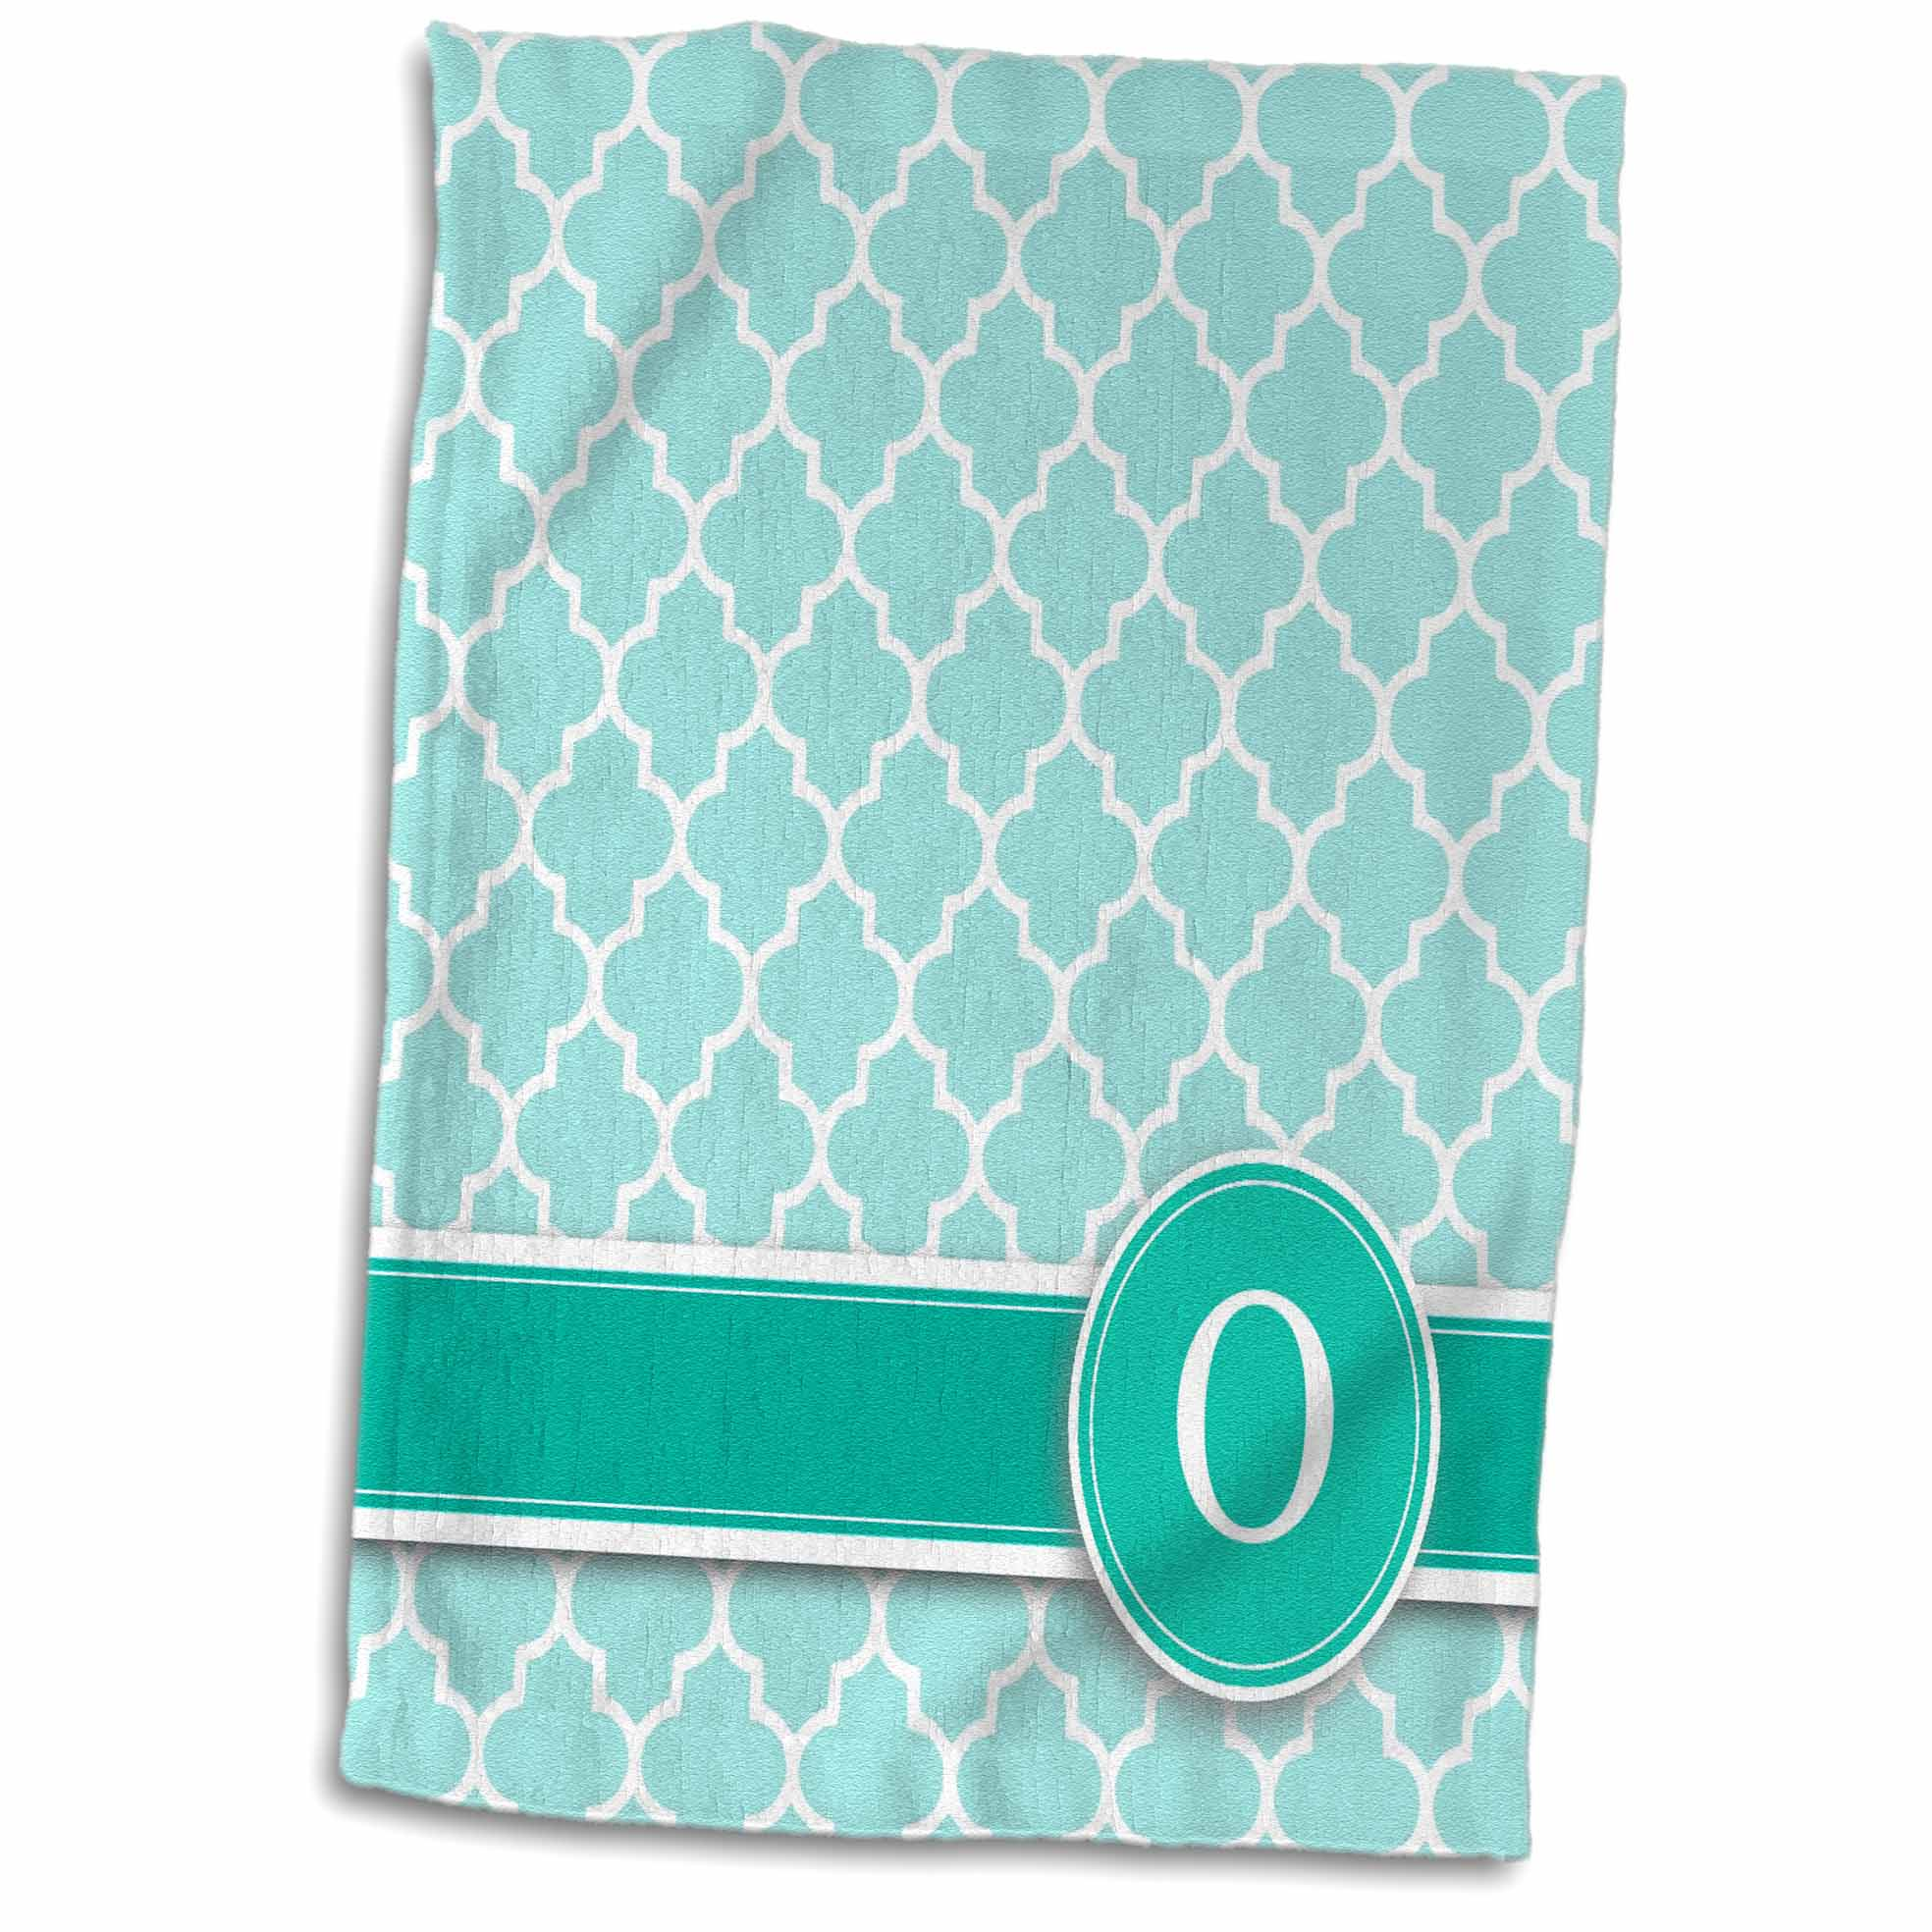 3dRose Personalized letter O aqua blue quatrefoil pattern Teal turquoise mint monogrammed personal initial - Towel, 15 by 22-inch